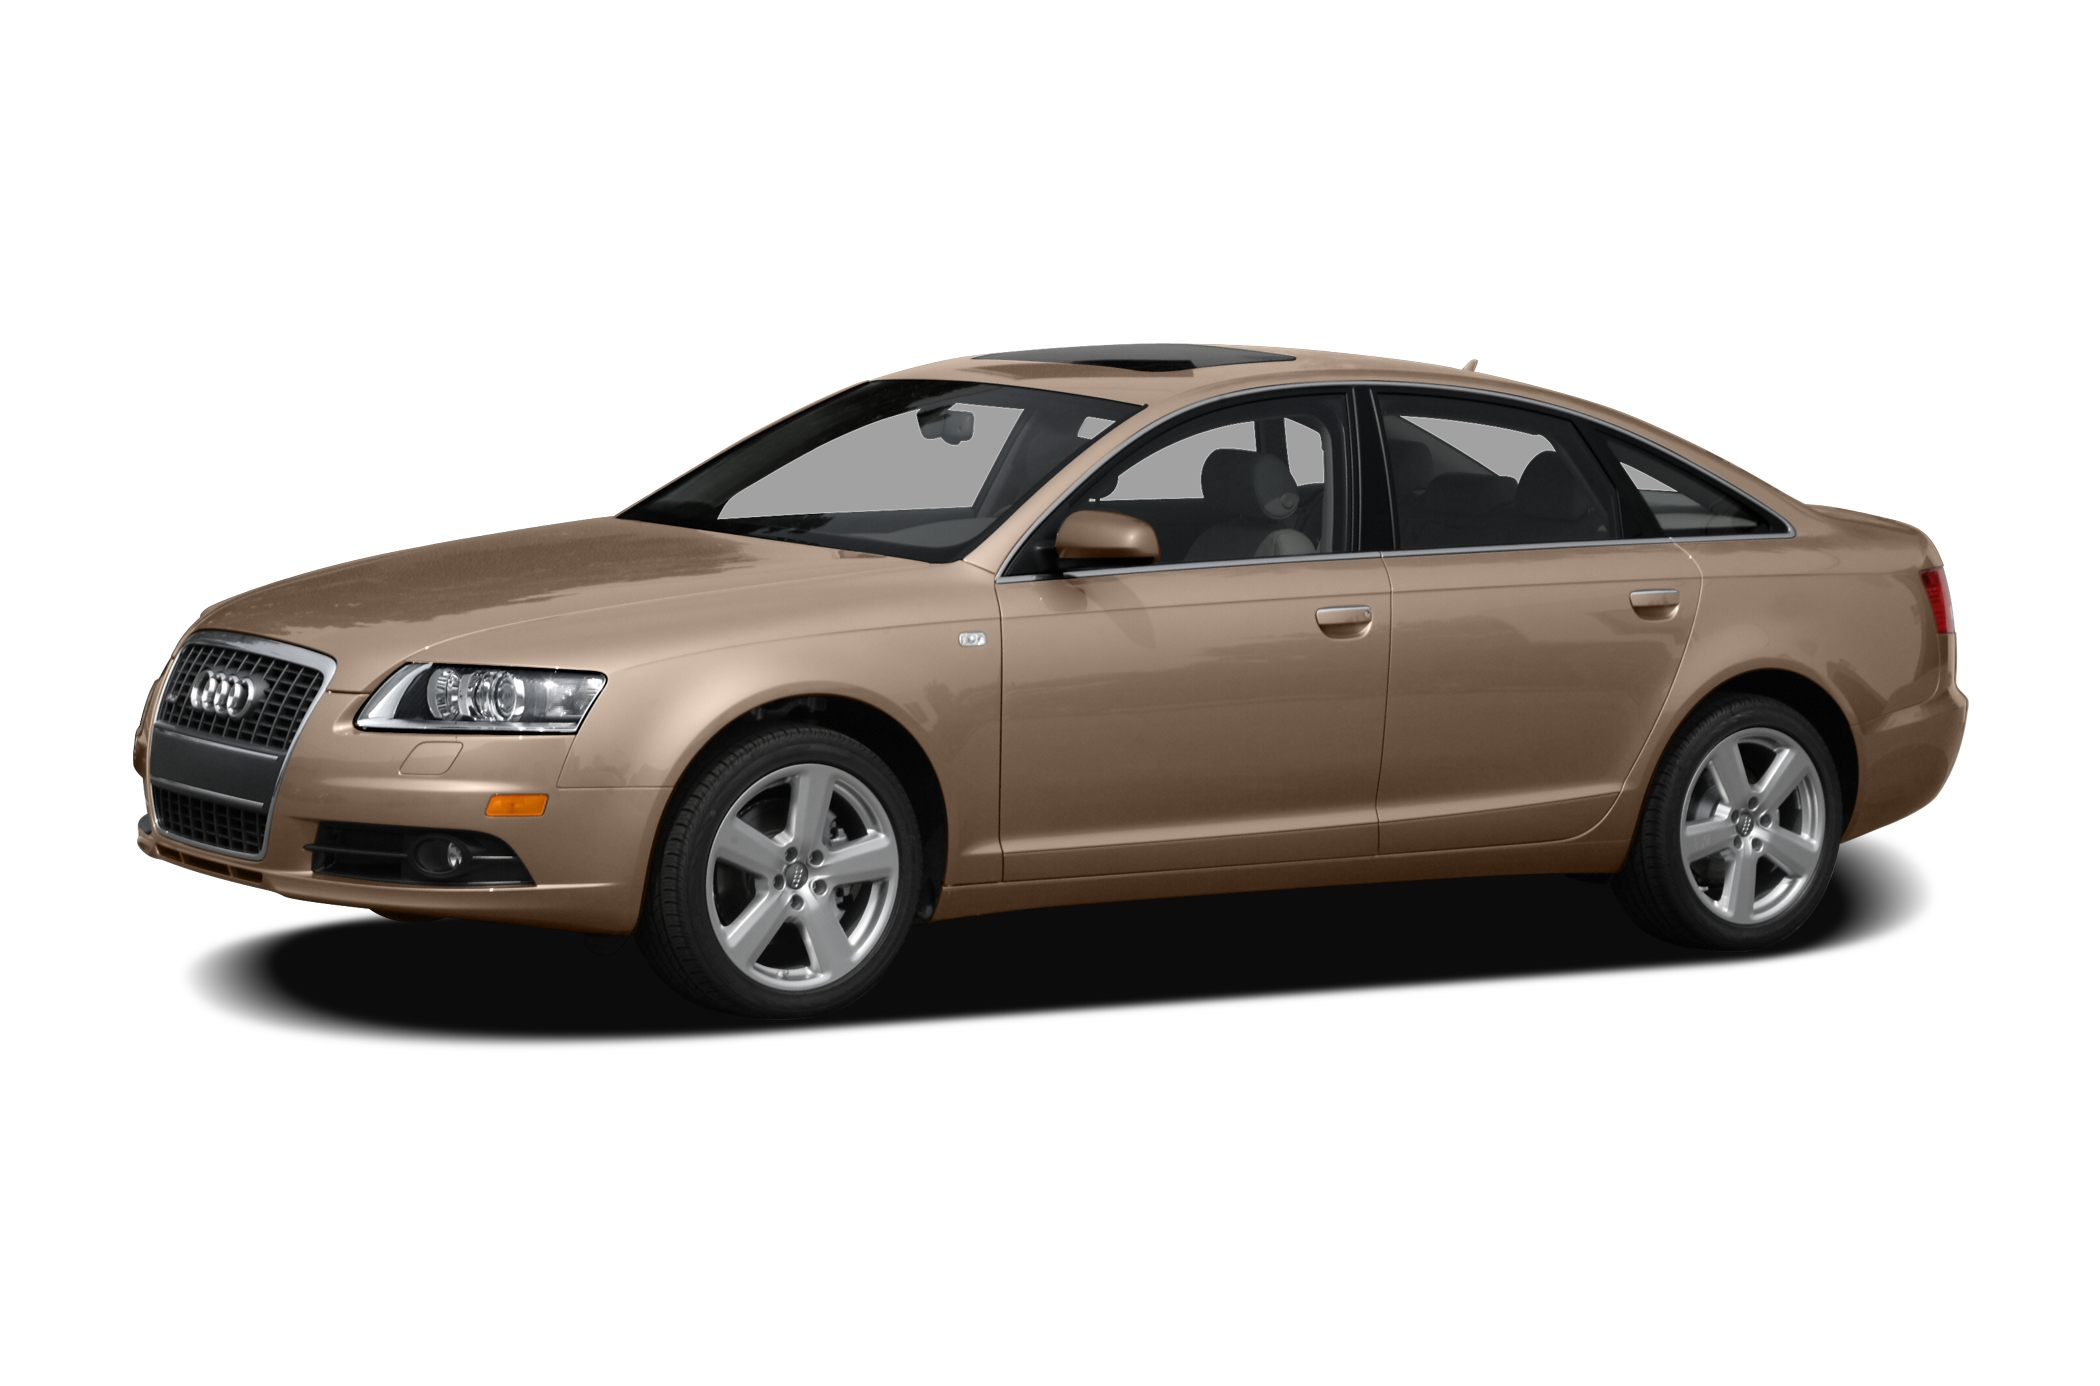 2008 Audi A6 32 quattro OUR PRICESYoure probably wondering why our prices are so much lower tha